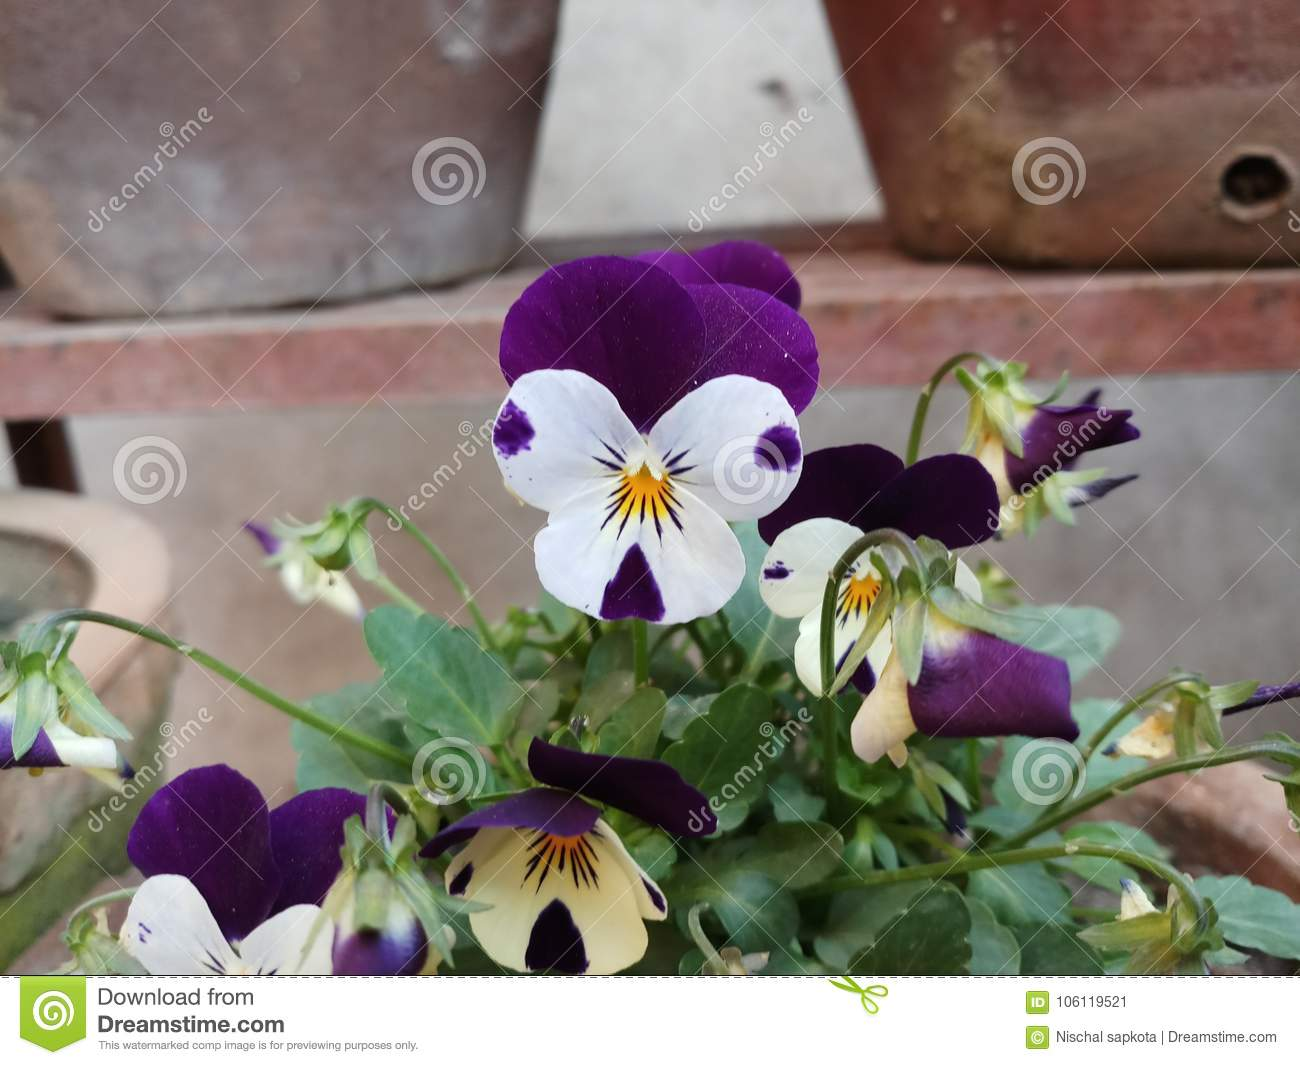 Awessome Purple And White Flowers Stock Image Image Of White